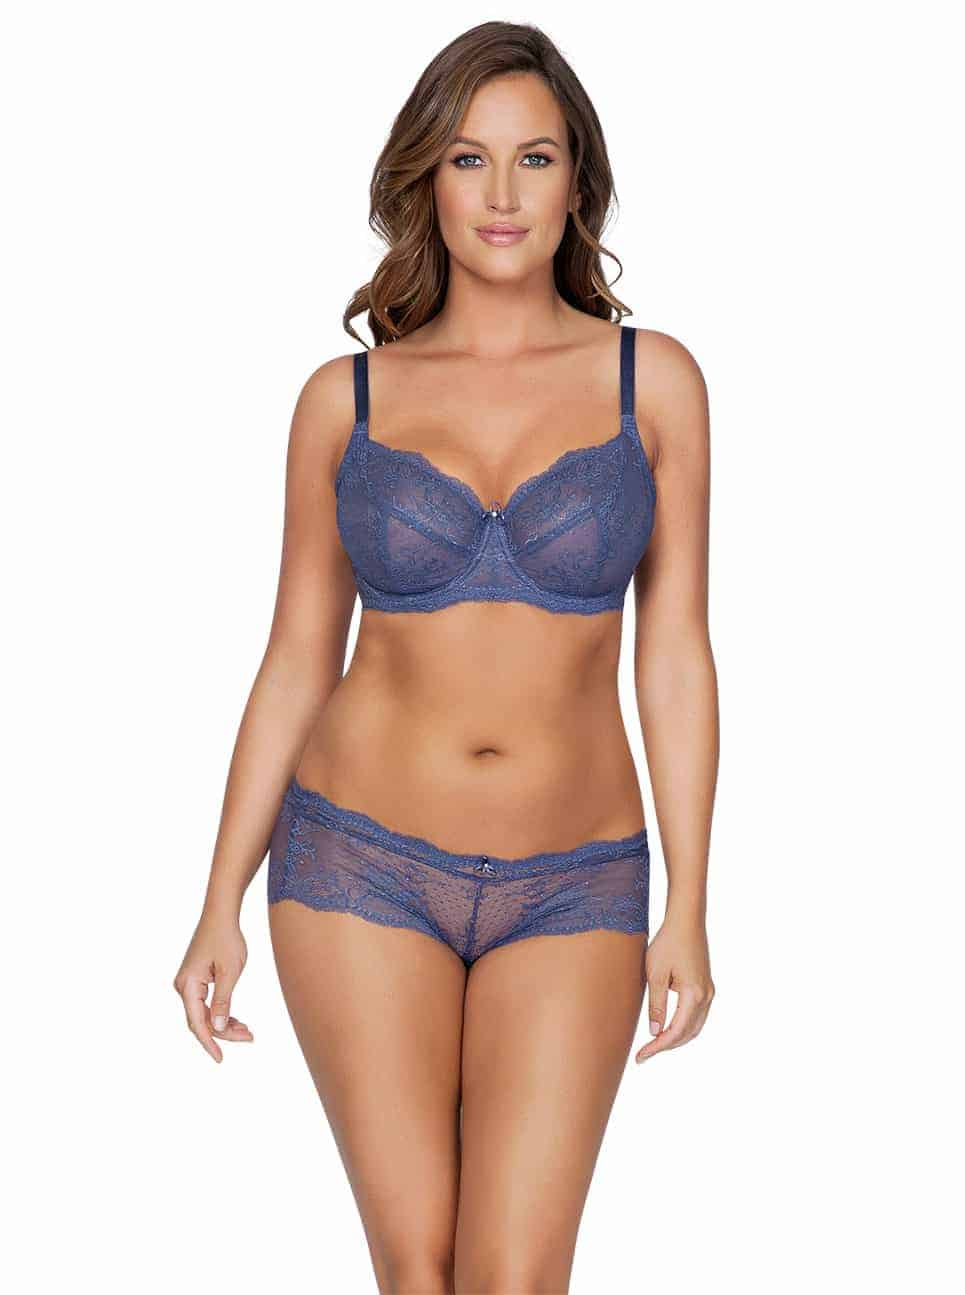 Sandrine P5352 UnlinedWire P5355 Hipster FrenchBlue Front copy 2 - Sandrine Hipster - French Blue - P5355